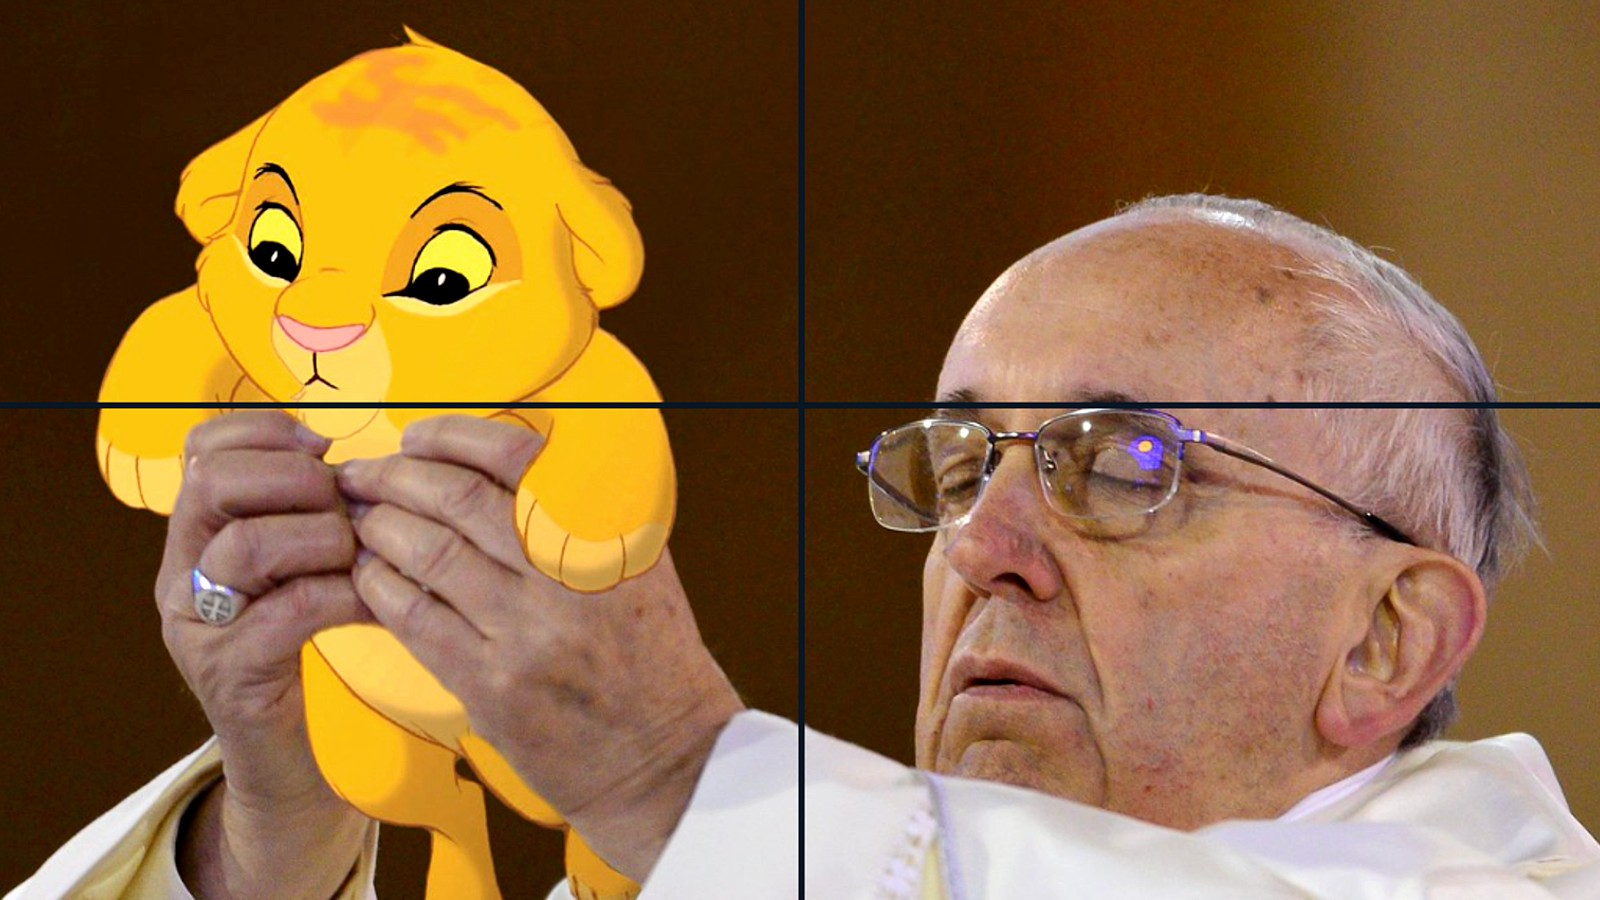 The Pope holds Simba from The Lion King